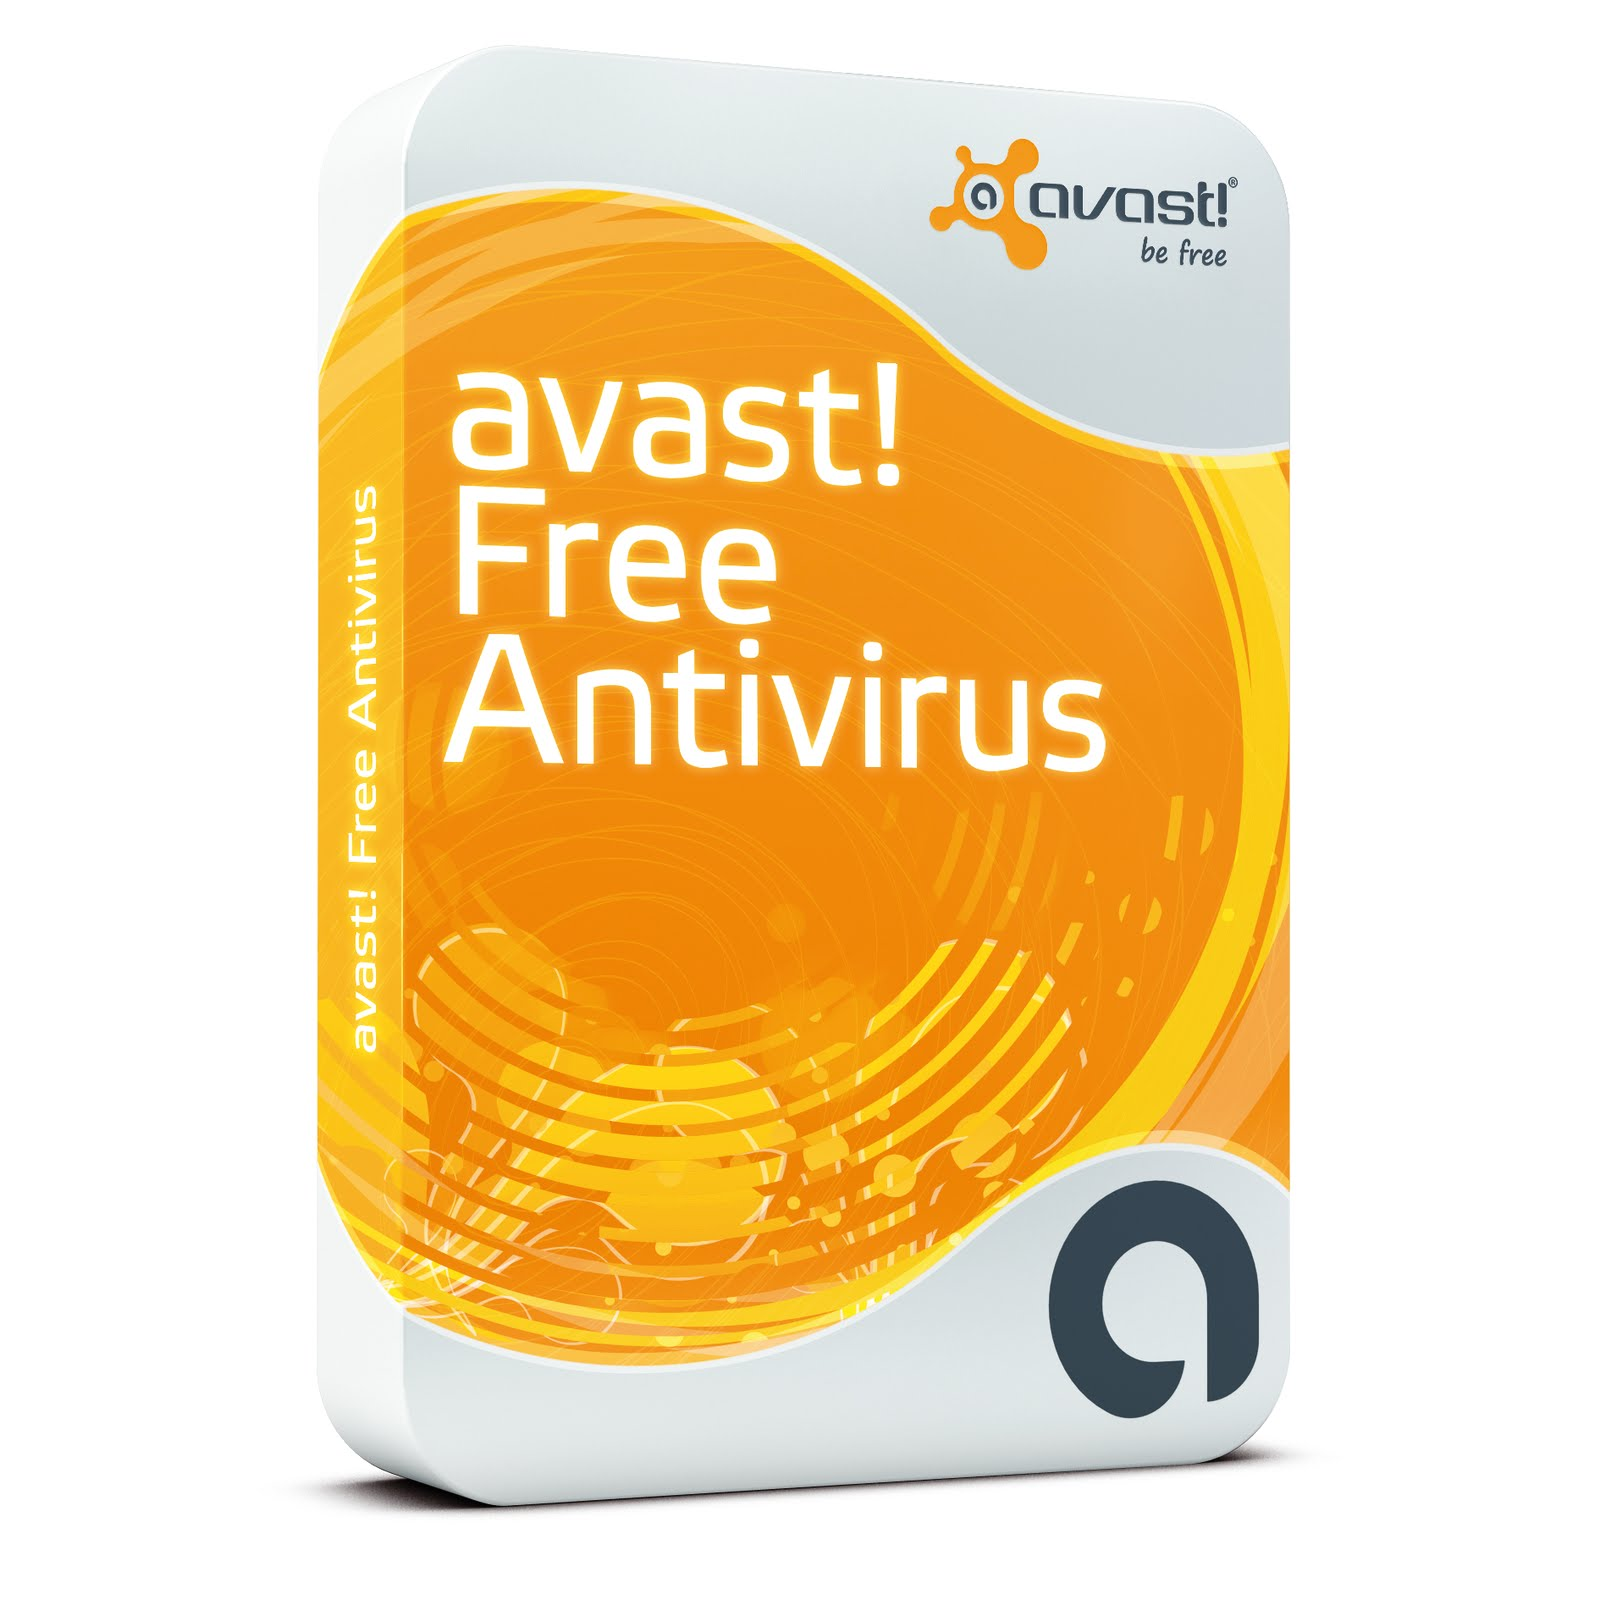 Avast free antivirus download free - 61d4